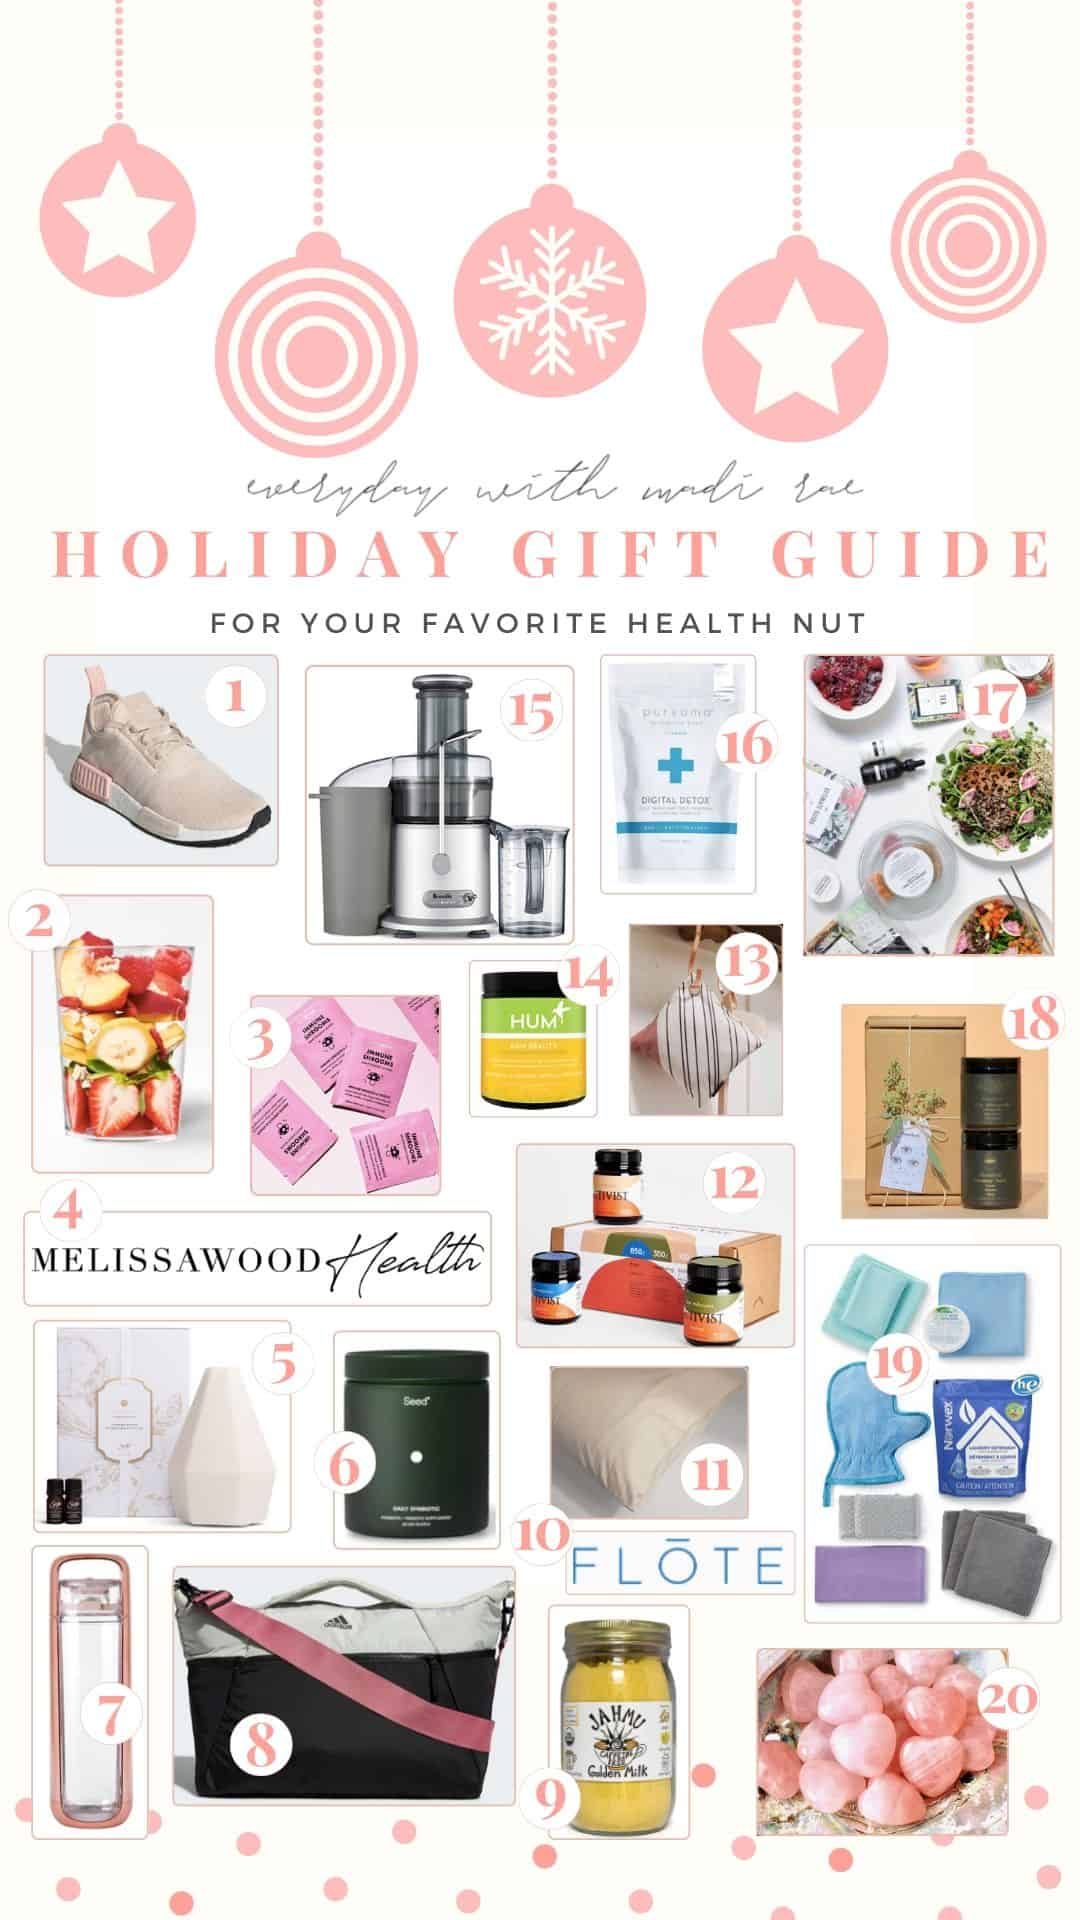 Welcome to my 2019 Holiday Gift Guide for your Favorite Health Nut! Including 20 health & wellness items that are sure to impress at any price point!